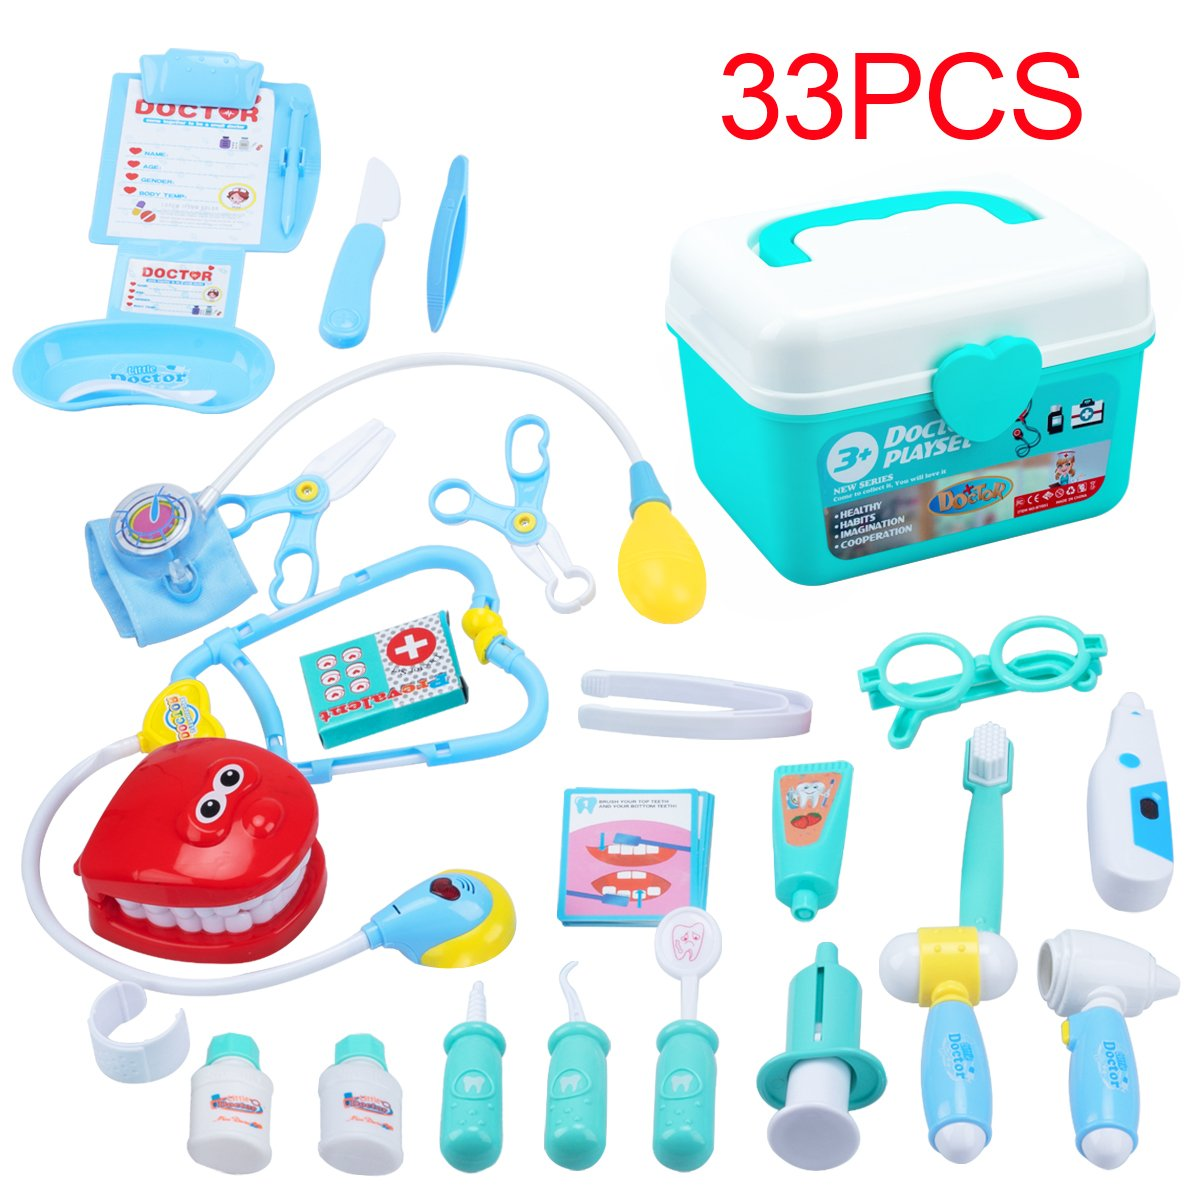 Keda Durable Kids DoctorキットPretend Play Toyセット33ピース歯科医医療キットwith電子聴診器for Boys and Girls グリーン  グリーン B07D27BDVF